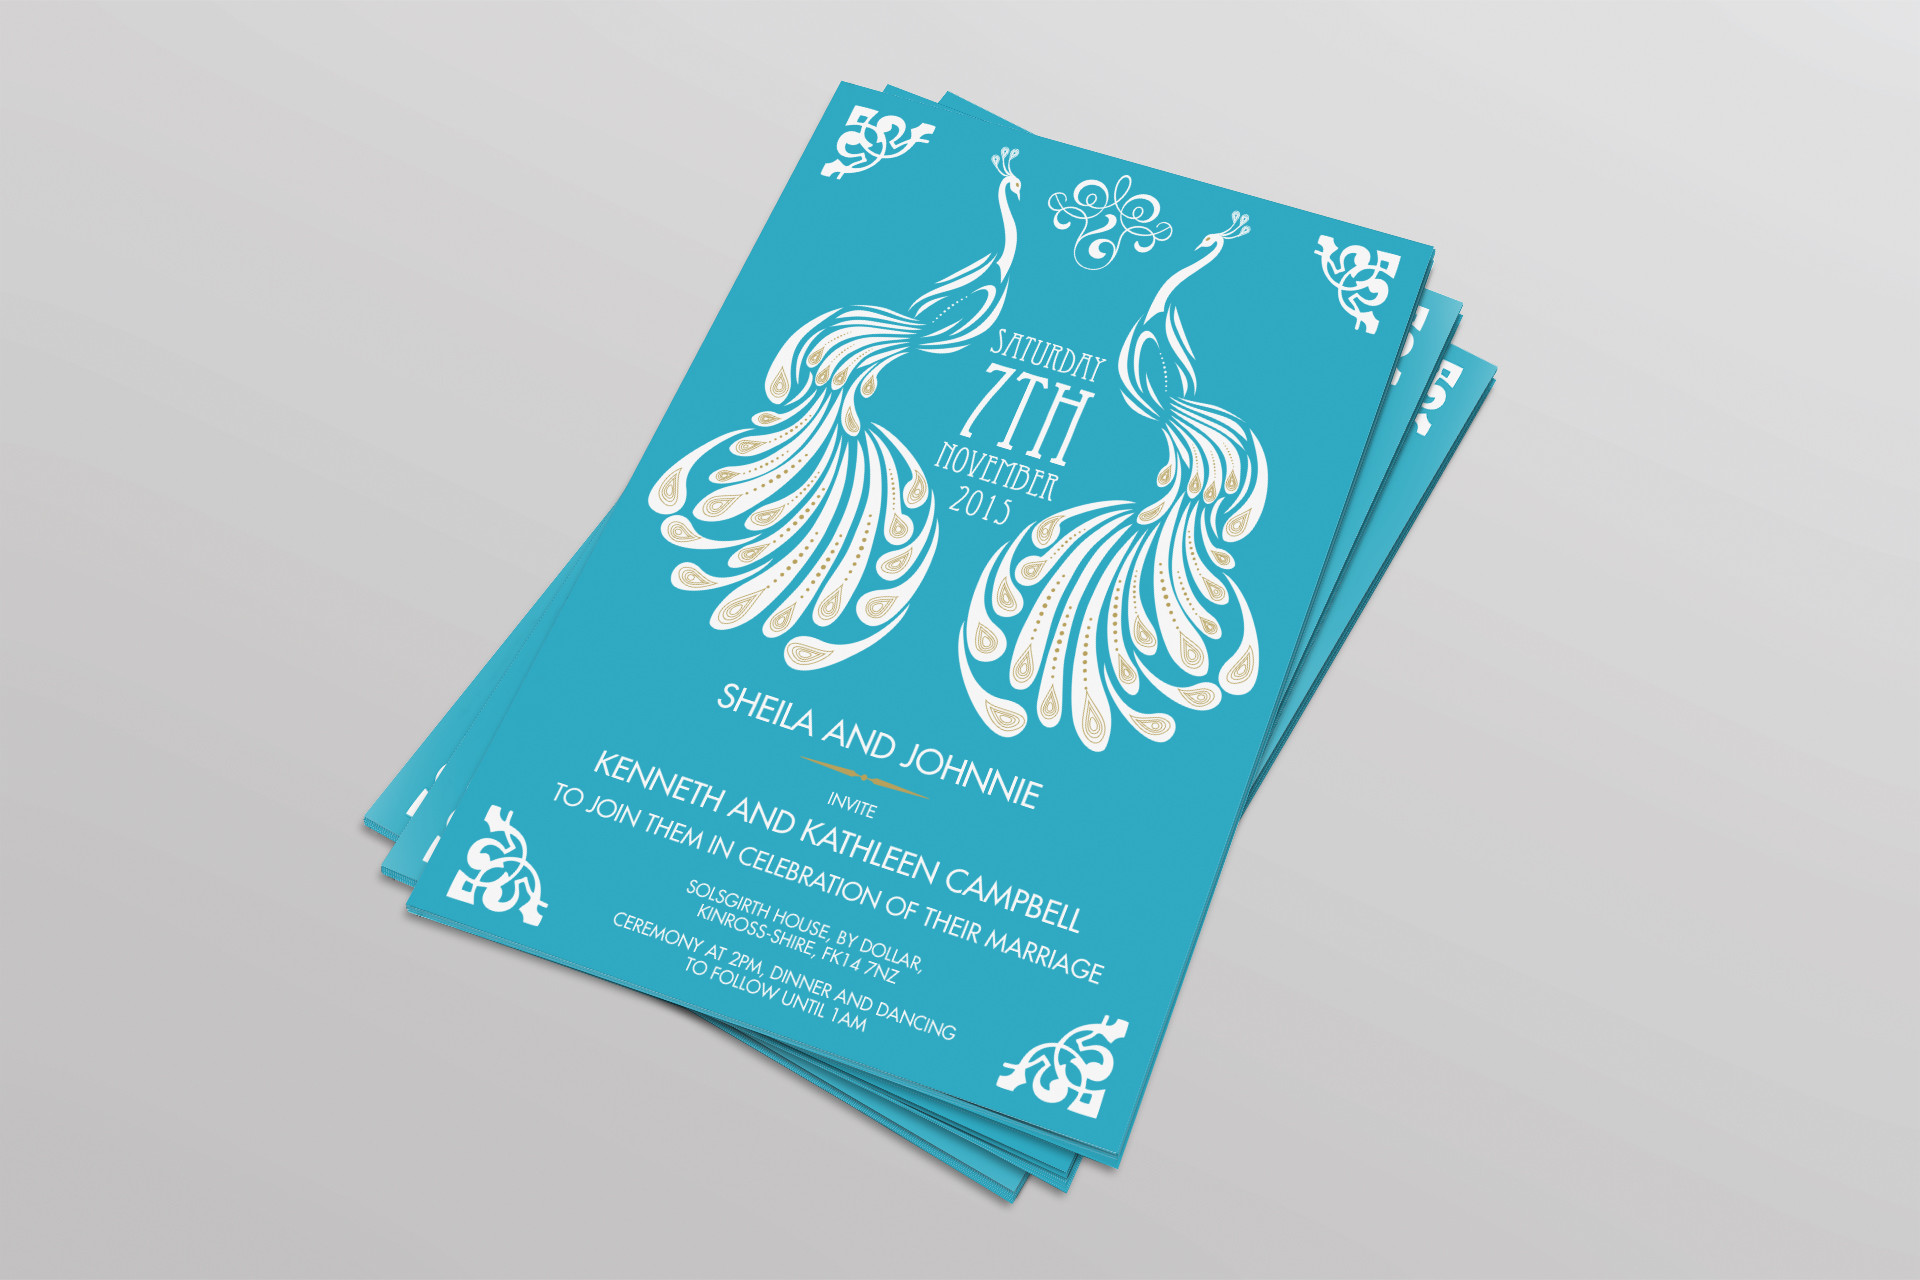 Flyer-design-Glasgow-Edinburgh-West-Lothian-17.jpg